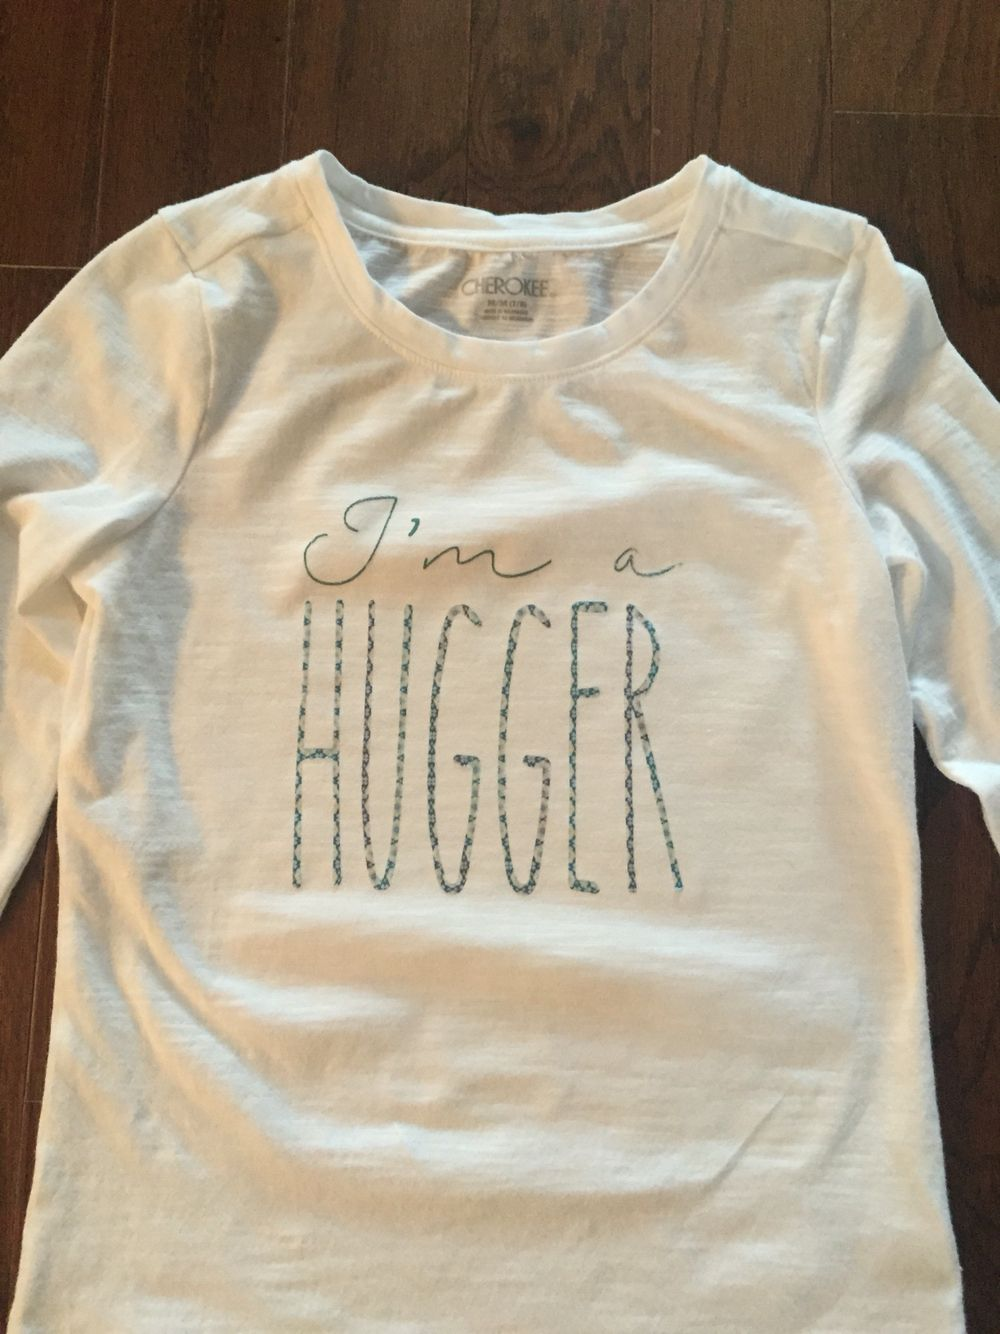 photograph regarding Printable Iron on Vinyl identified as Im a hugger blouse intended utilizing a cricut and printable iron upon